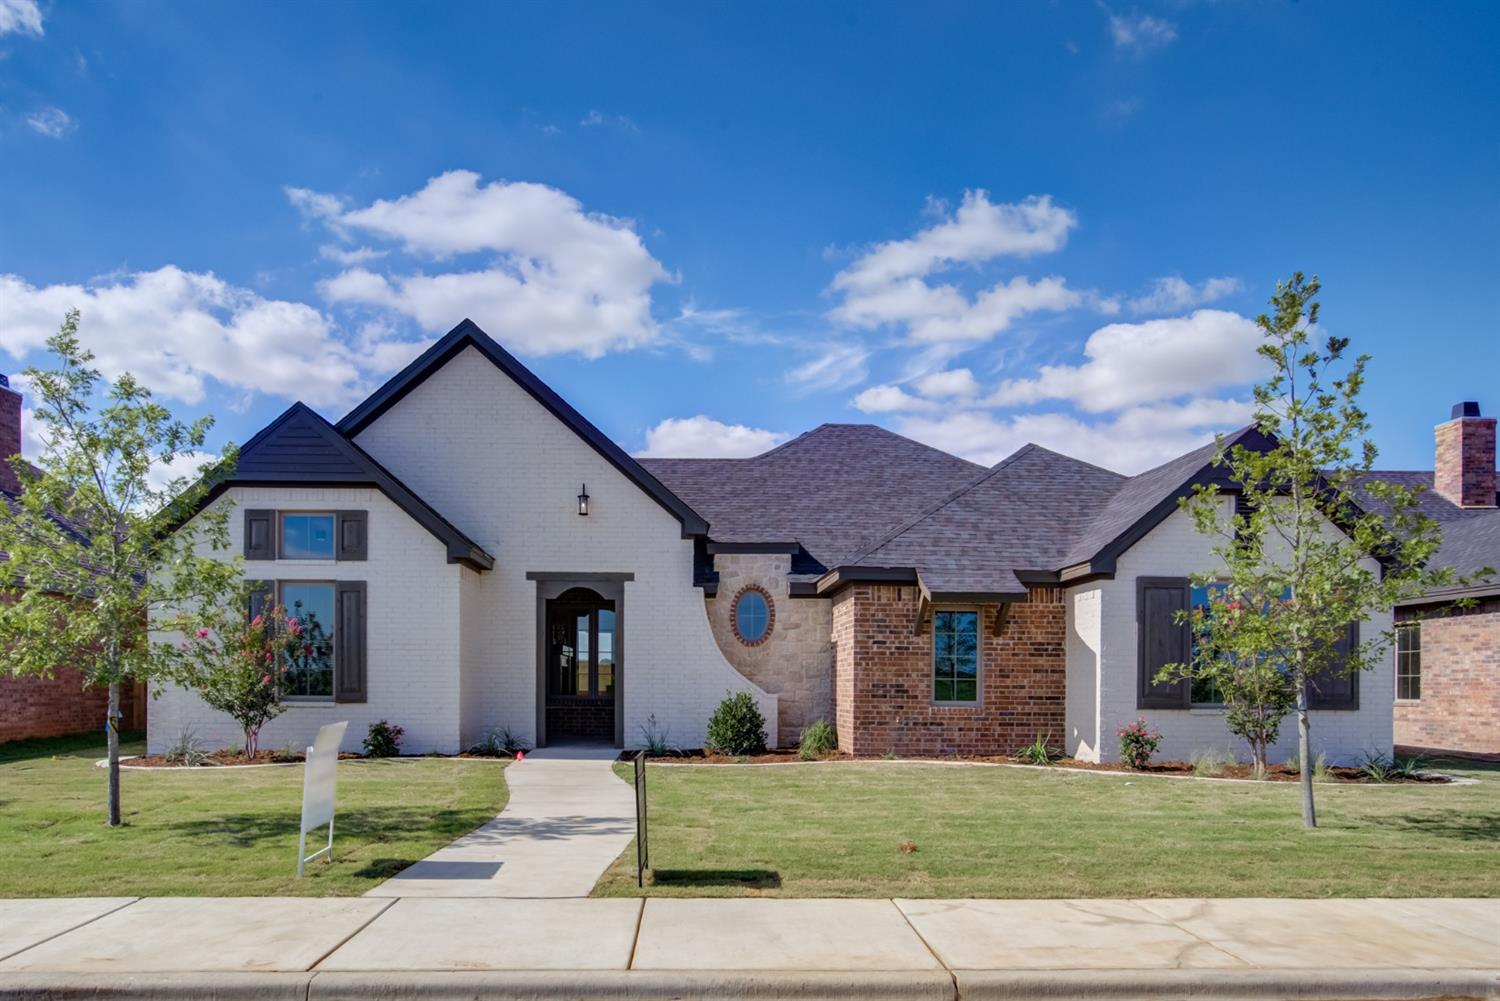 Back to School, August Only, Sharkey is offering $5,000 towards Closing Costs!!! Eastwick Summer 2019 Tour home built by Sharkey Custom Homes, Inc.  This beautiful and affordable home will have all of the bells and whistles that Sharkey Homes provide.  You will love the large family room, gorgeous ceilings and stone accents.  It is a great floor plan for family gatherings and entertaining.